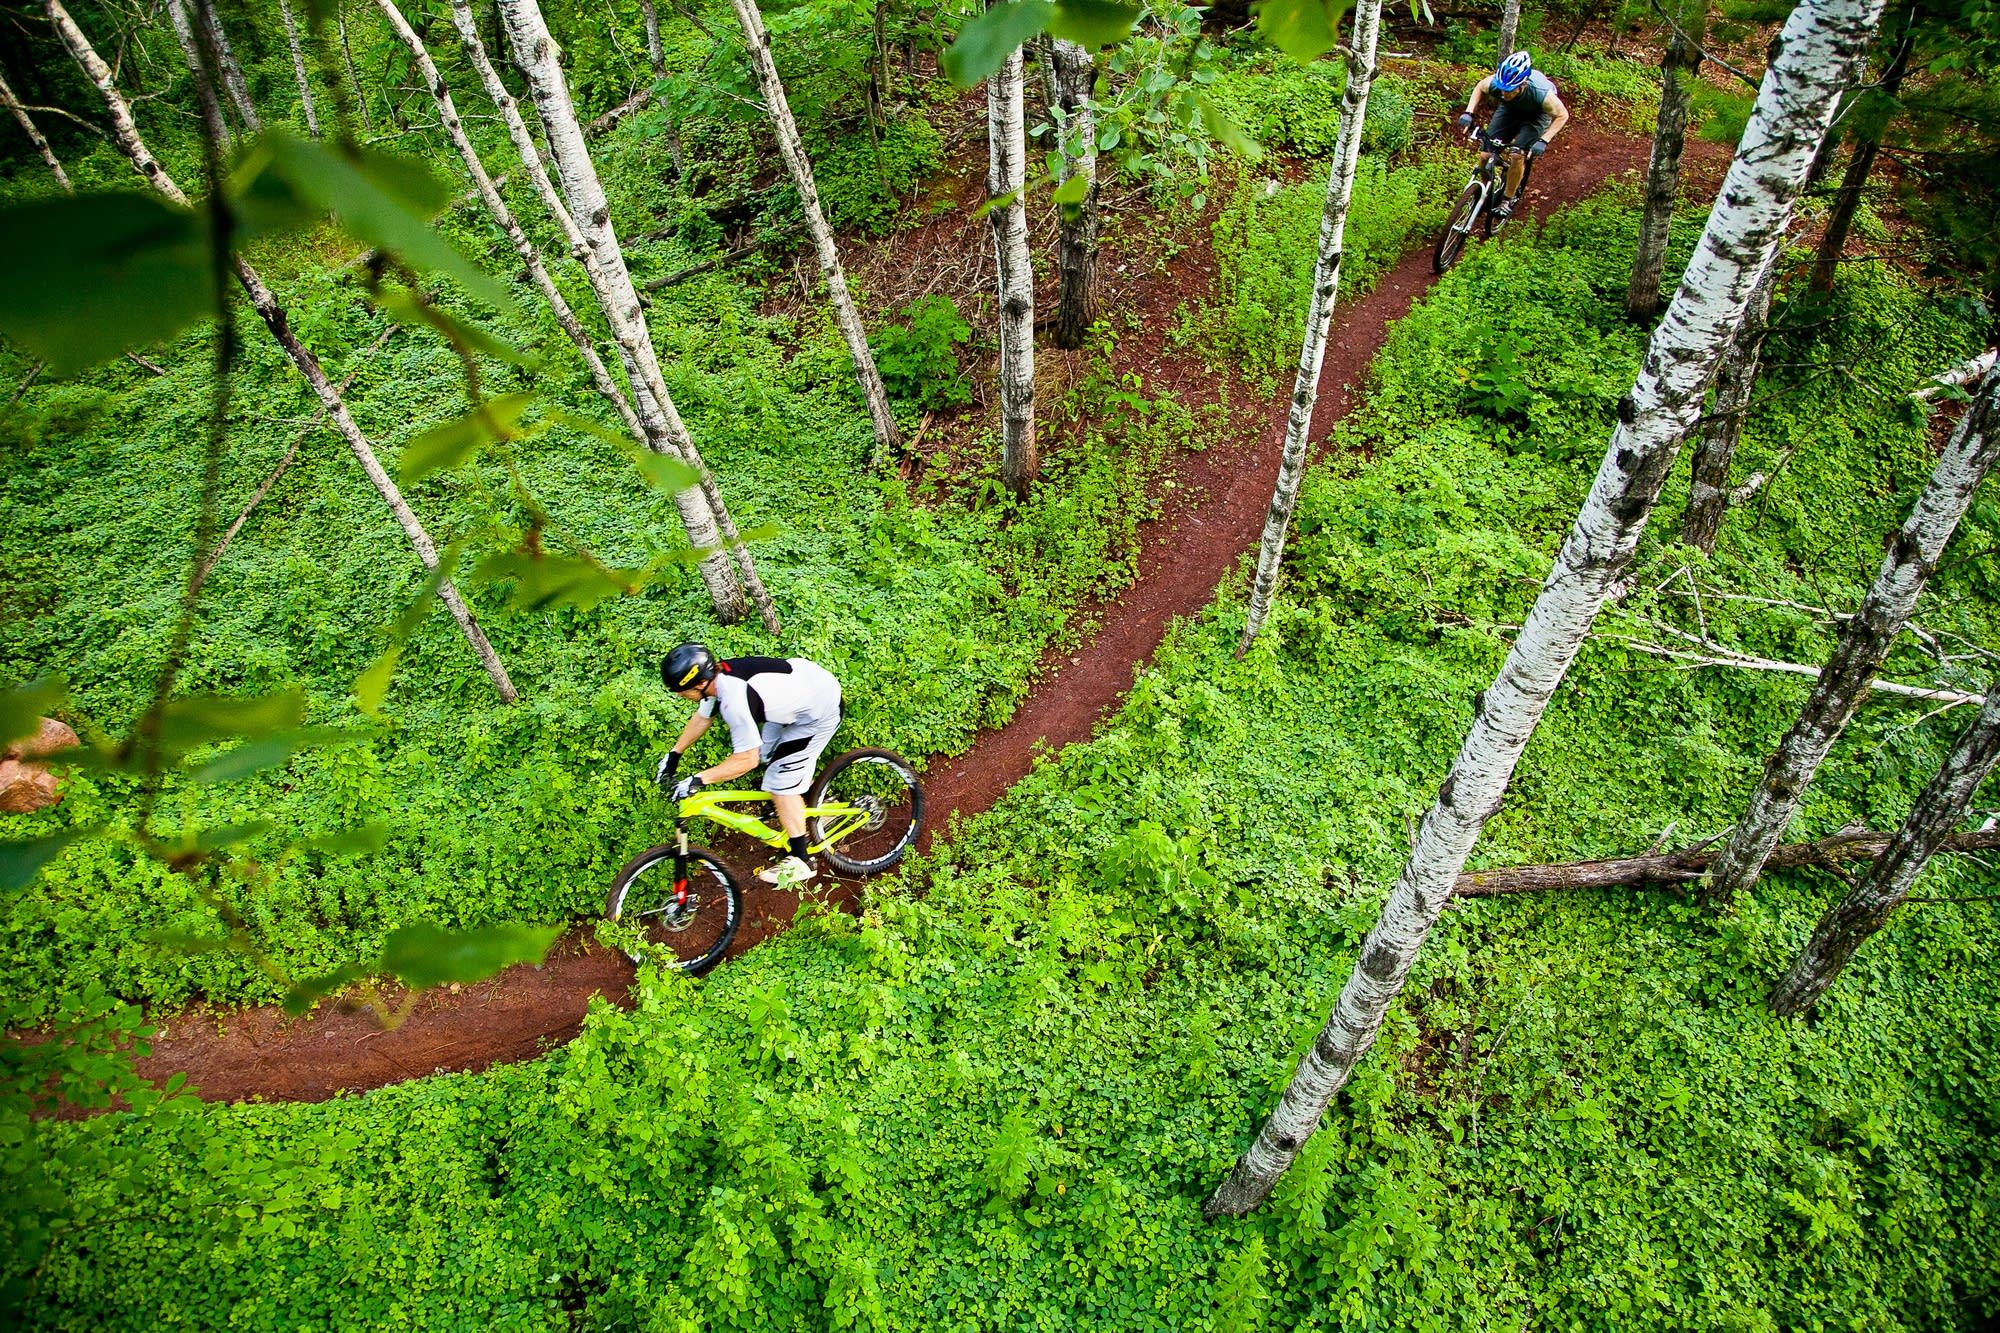 A mountain bike trail